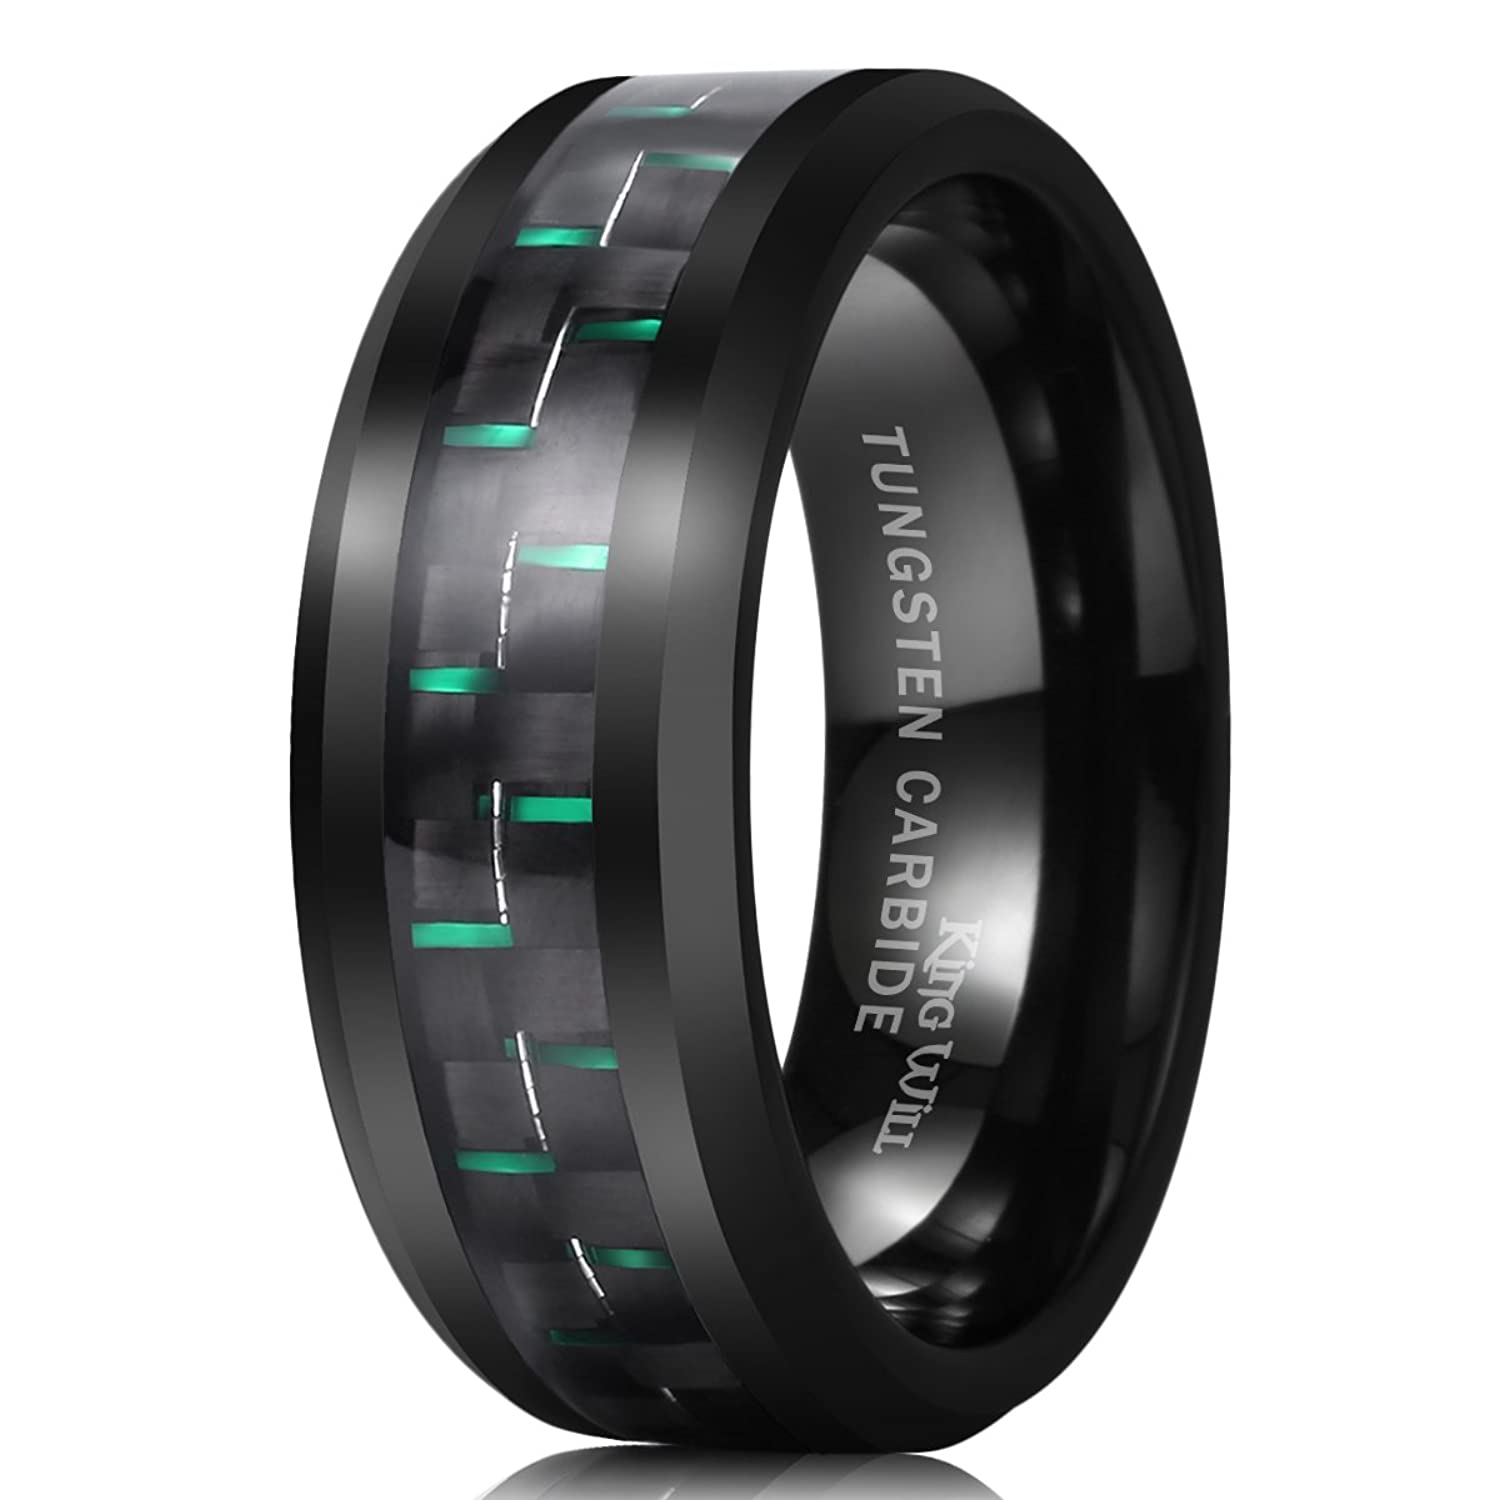 king will gentleman 8mm black tungsten carbide ring green carbon fiber polished finish comfort fit amazoncom - Black Mens Wedding Rings